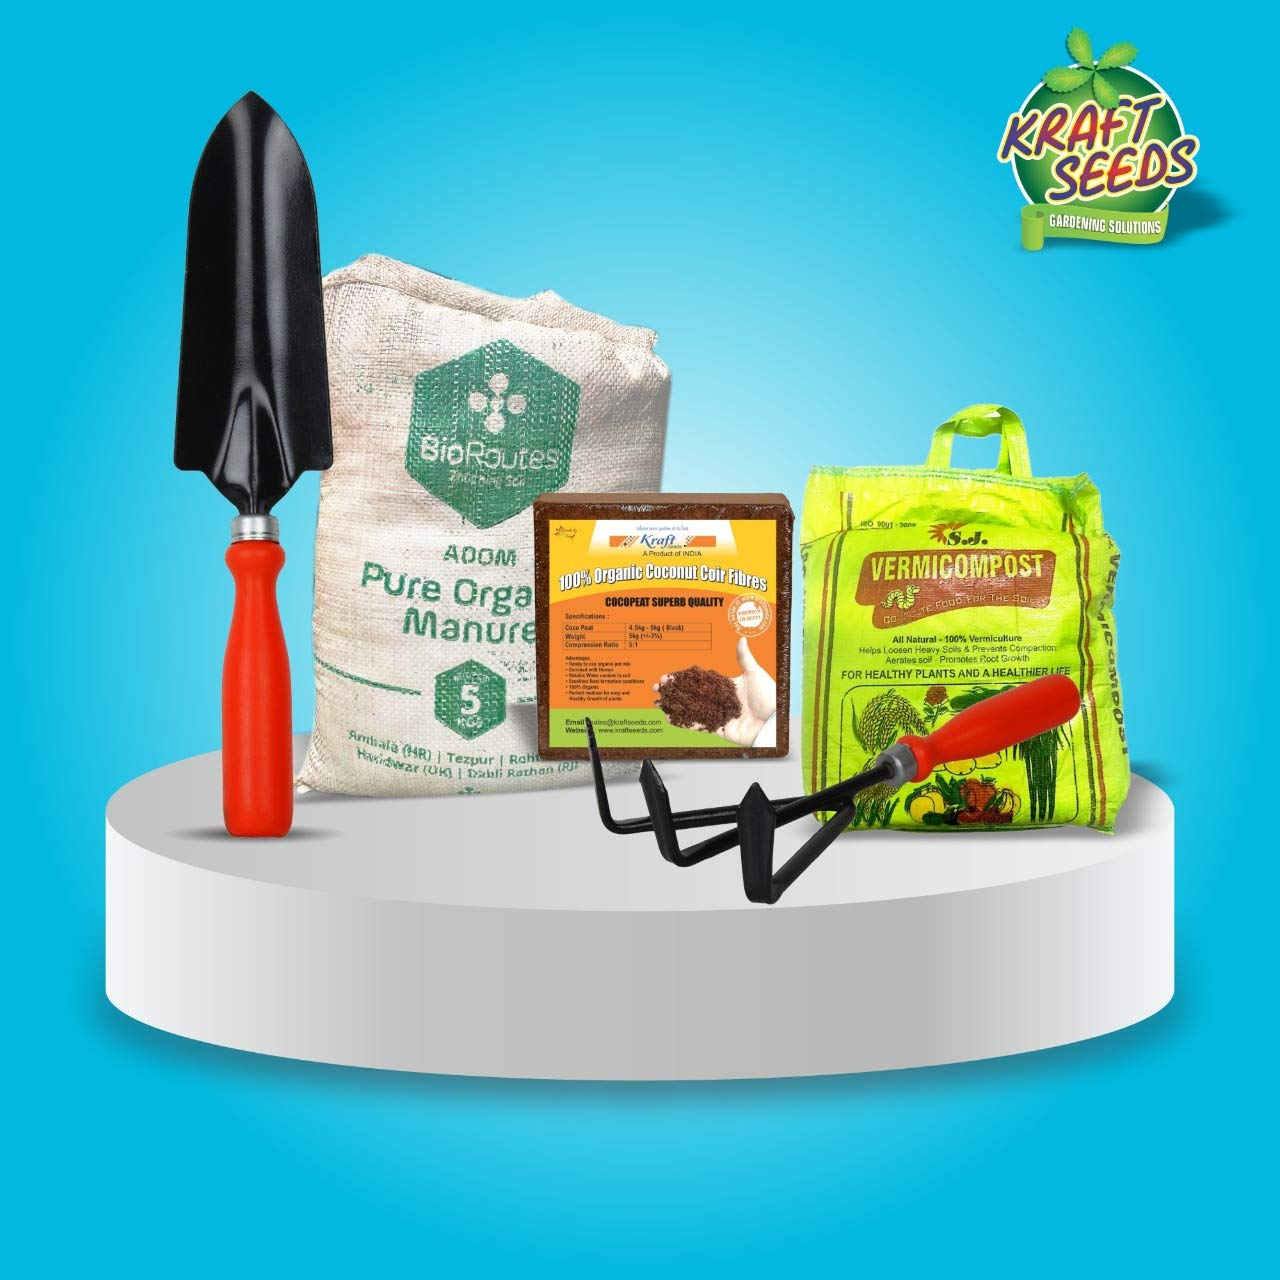 gate-garden-do-it-yourself-coco-peat-5kg-organic-manure-5-kg-vermicompost-5kg-with-trowel-cultivator-upto-75kg-of-potting-soil-mix-at-home